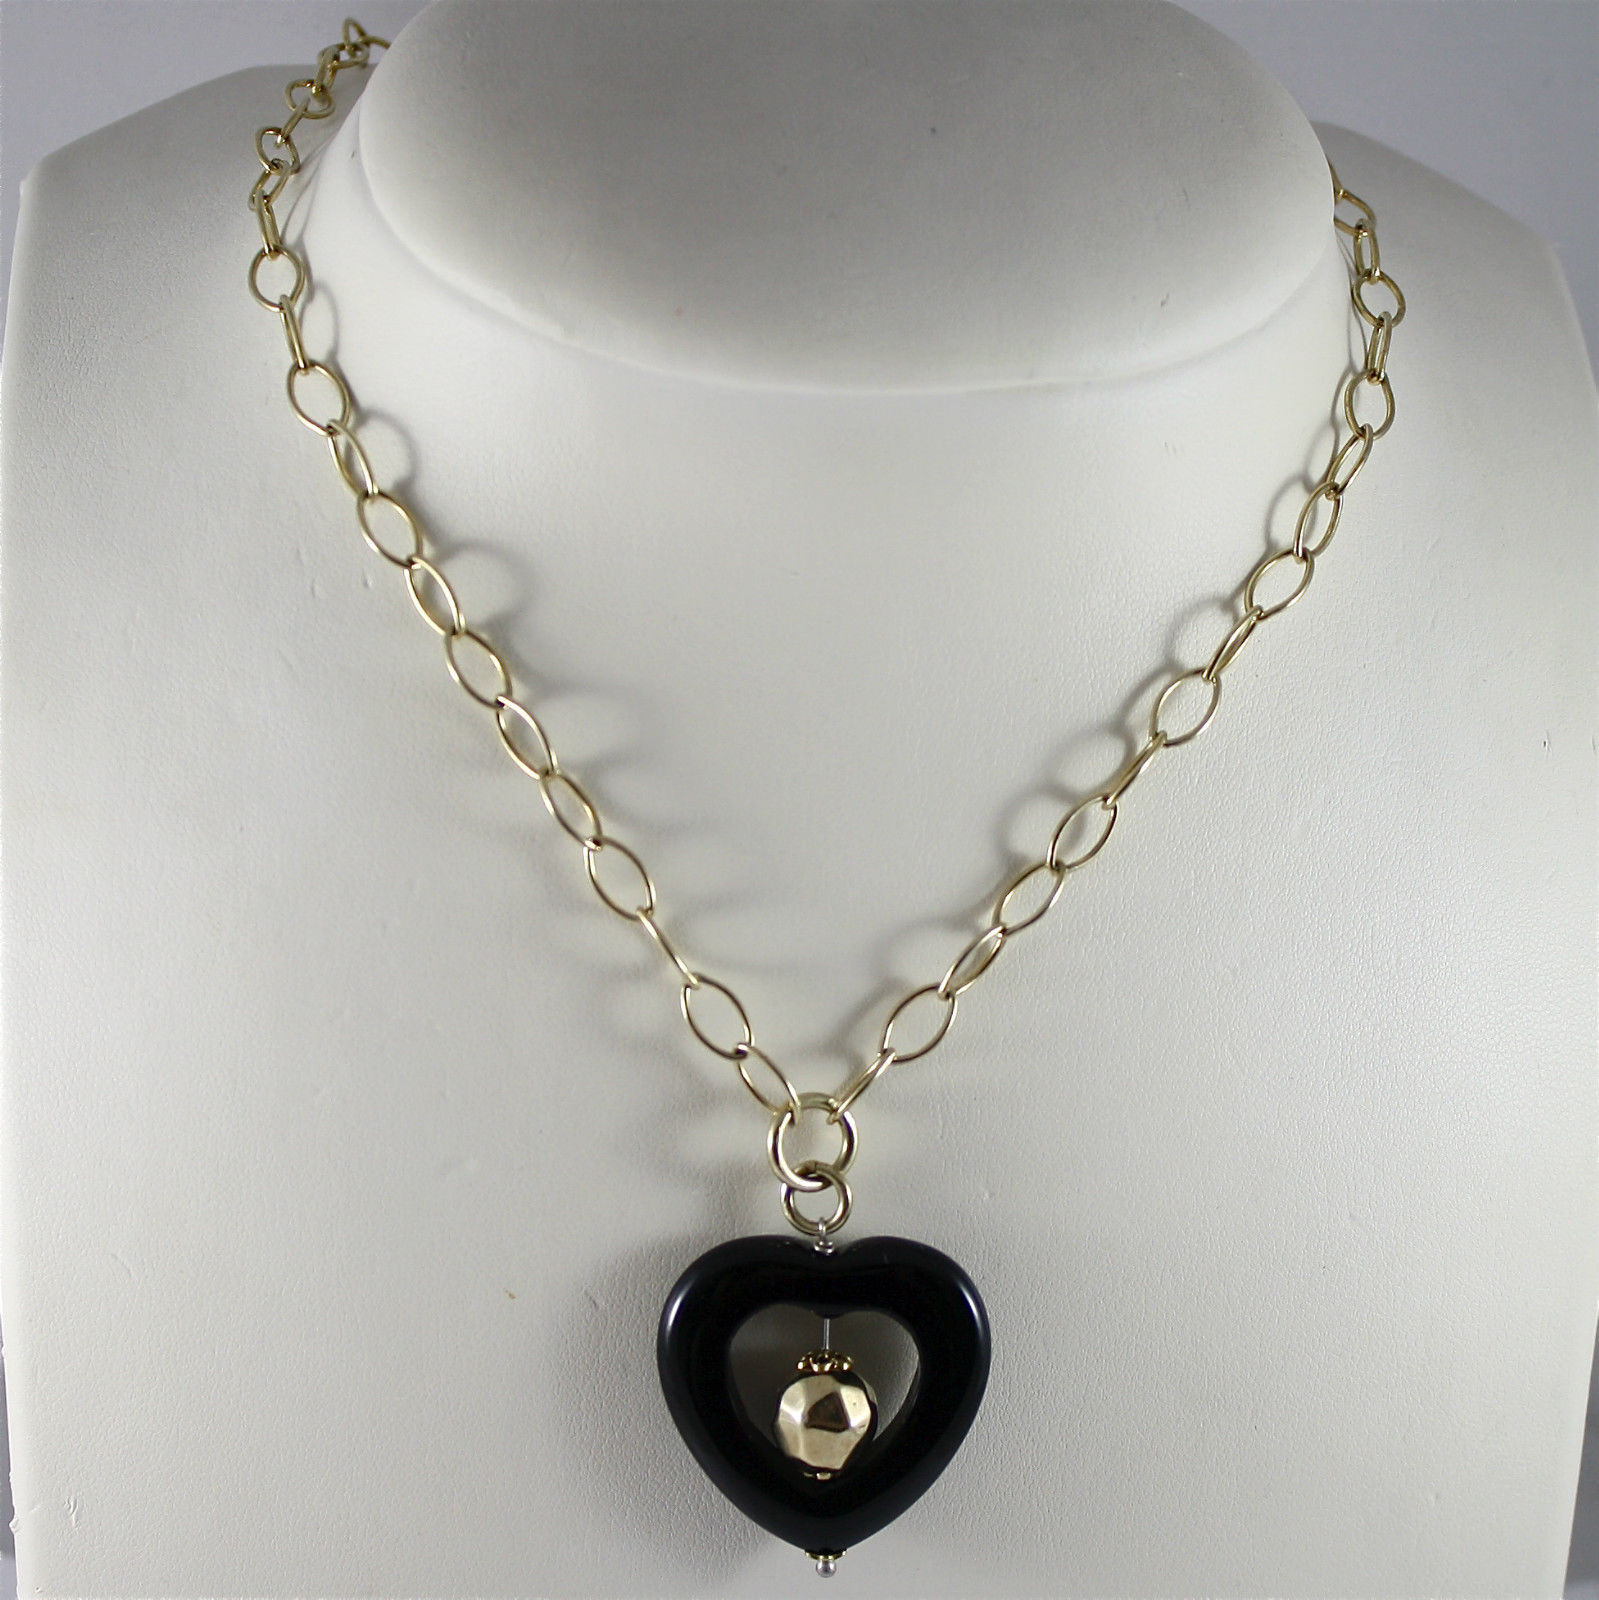 925 Silver Necklace Laminate Gold Yellow, Pendant Black Heart Onyx